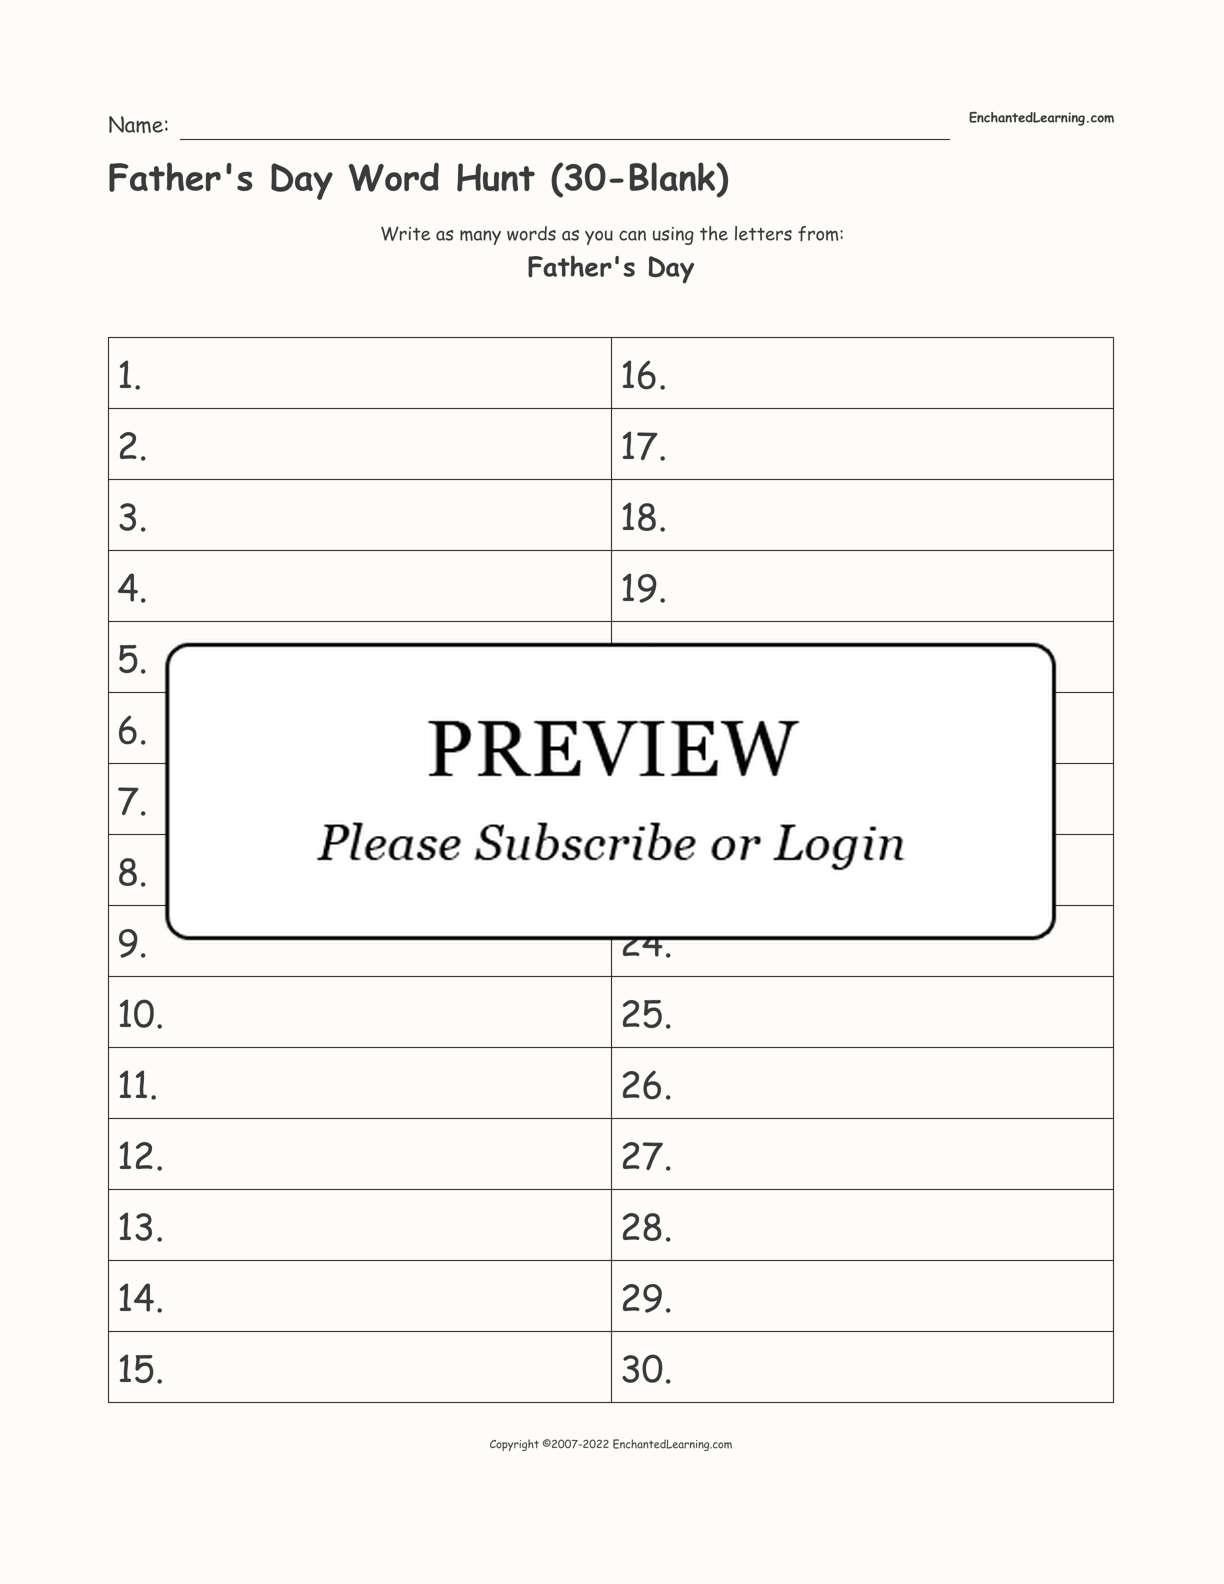 Father's Day Word Hunt (30-Blank) interactive worksheet page 1